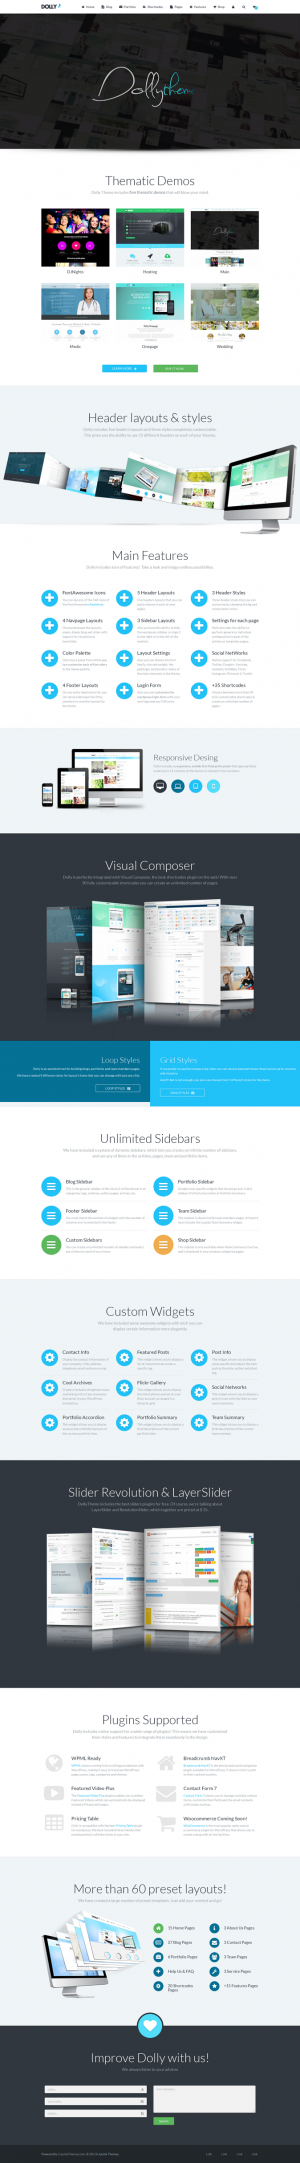 Dolly is a clean, powerful & multipurpose WordPress theme that can be used to build professi ...